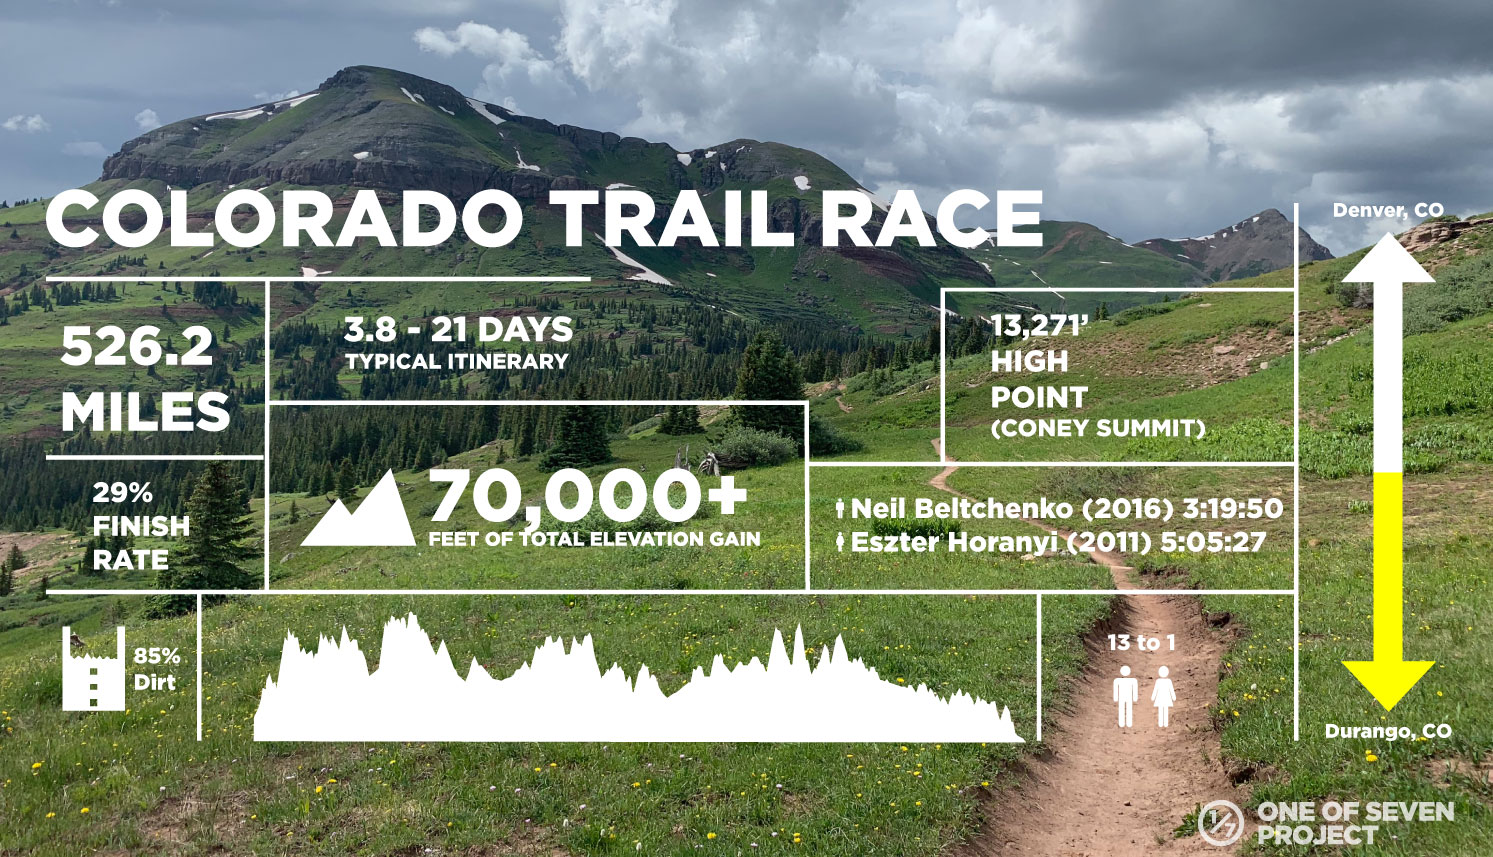 COLORADO TRAIL RACE - DATA COLLAGES - BIKEPACKING